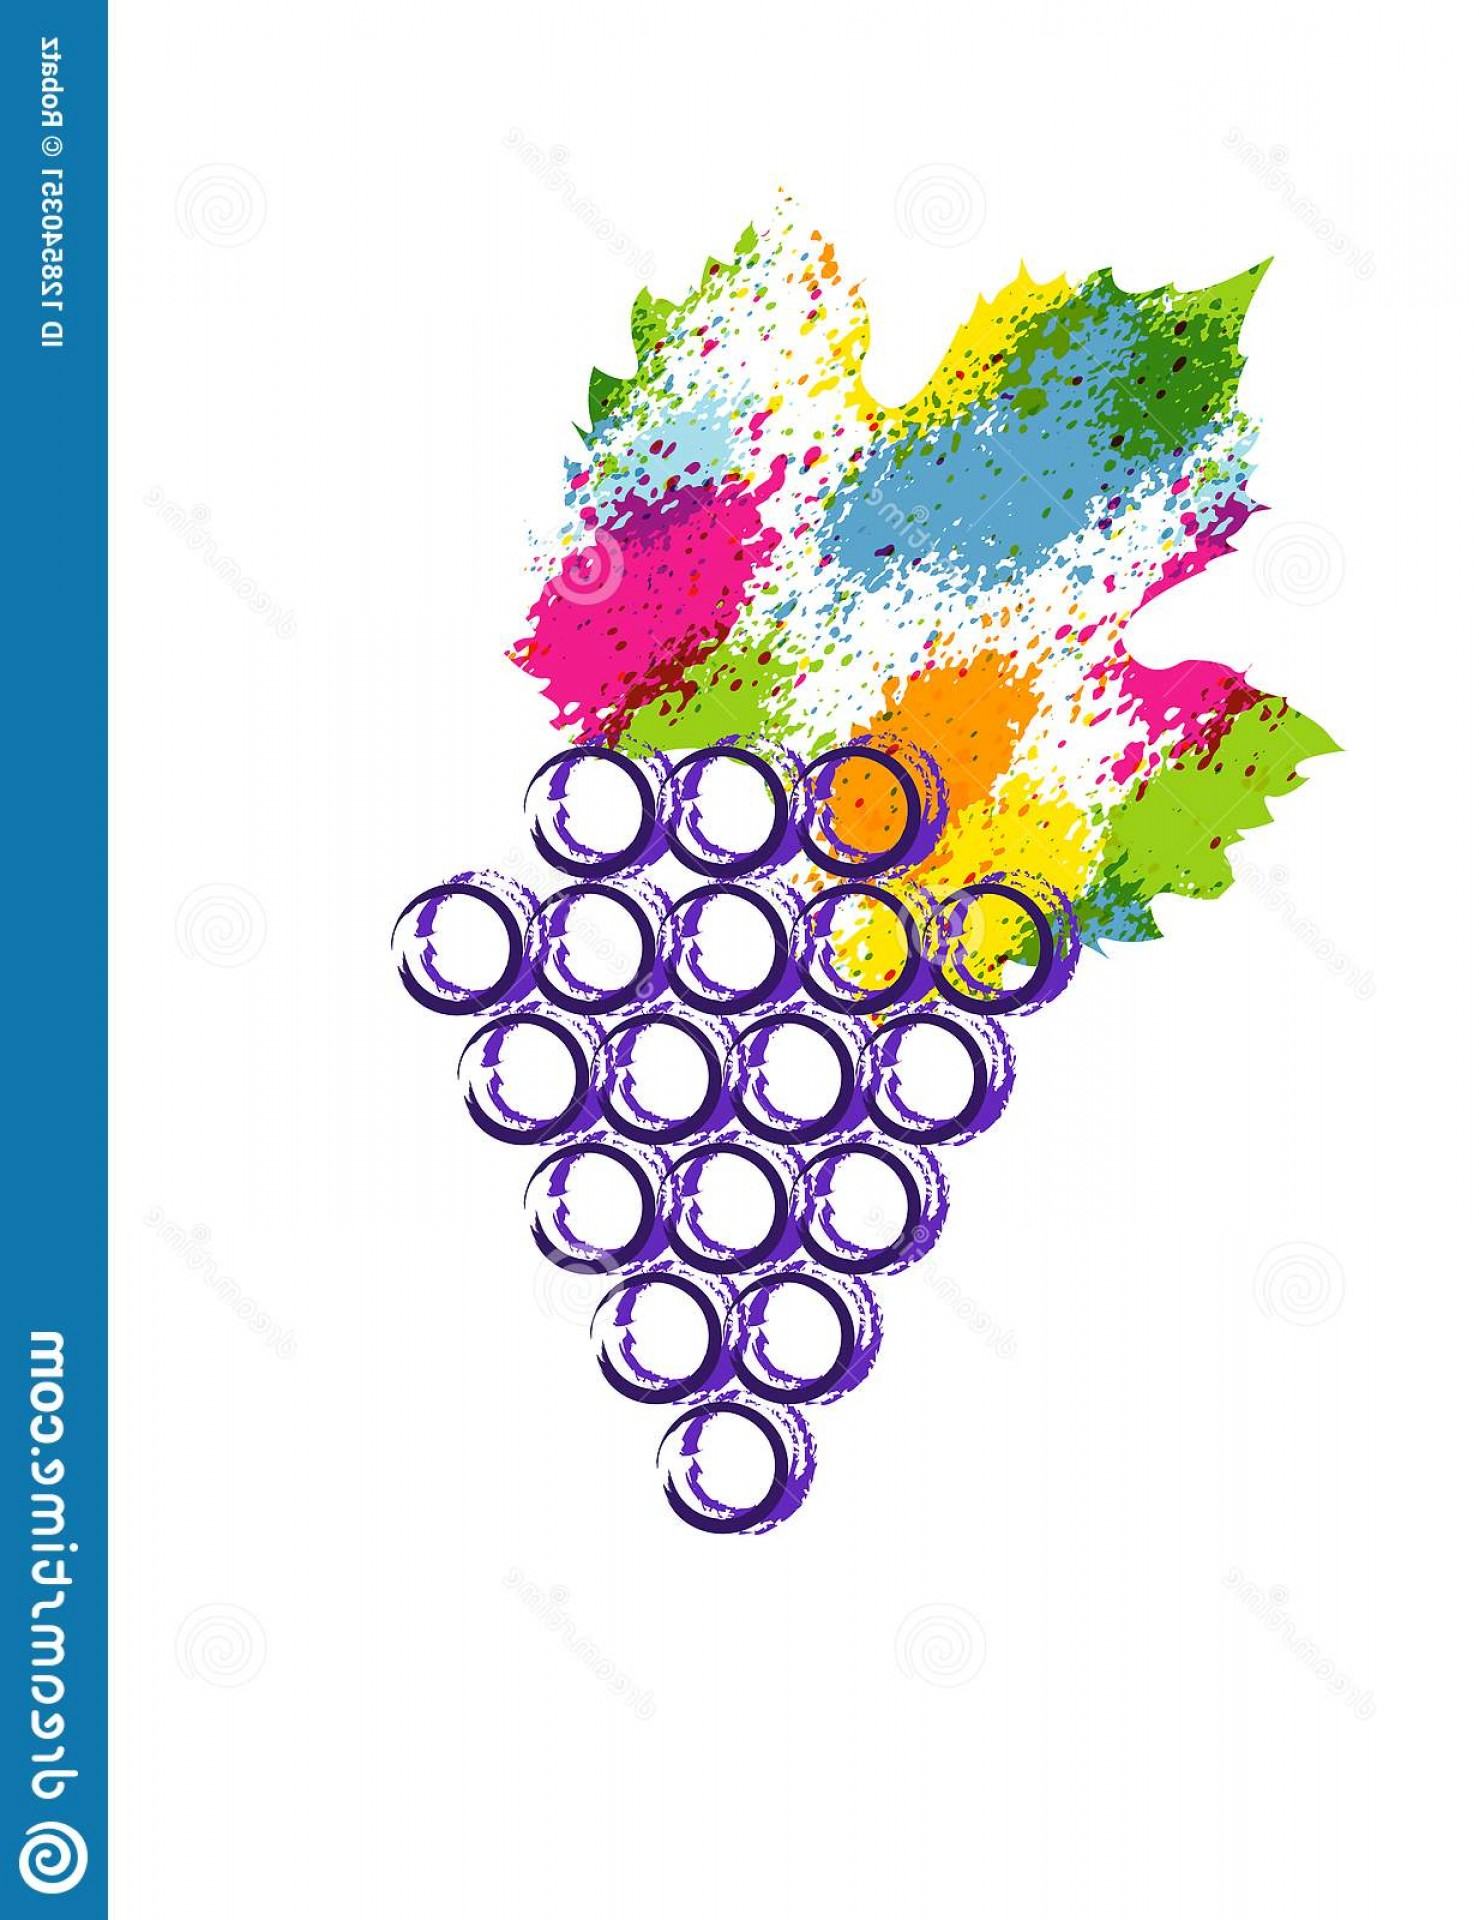 Abstract Vector Grapes: Vector Illustration Colorful Grapes Vine Icon Abstract Splash Style Watercolor Grape Berries Design Concept Wine Image